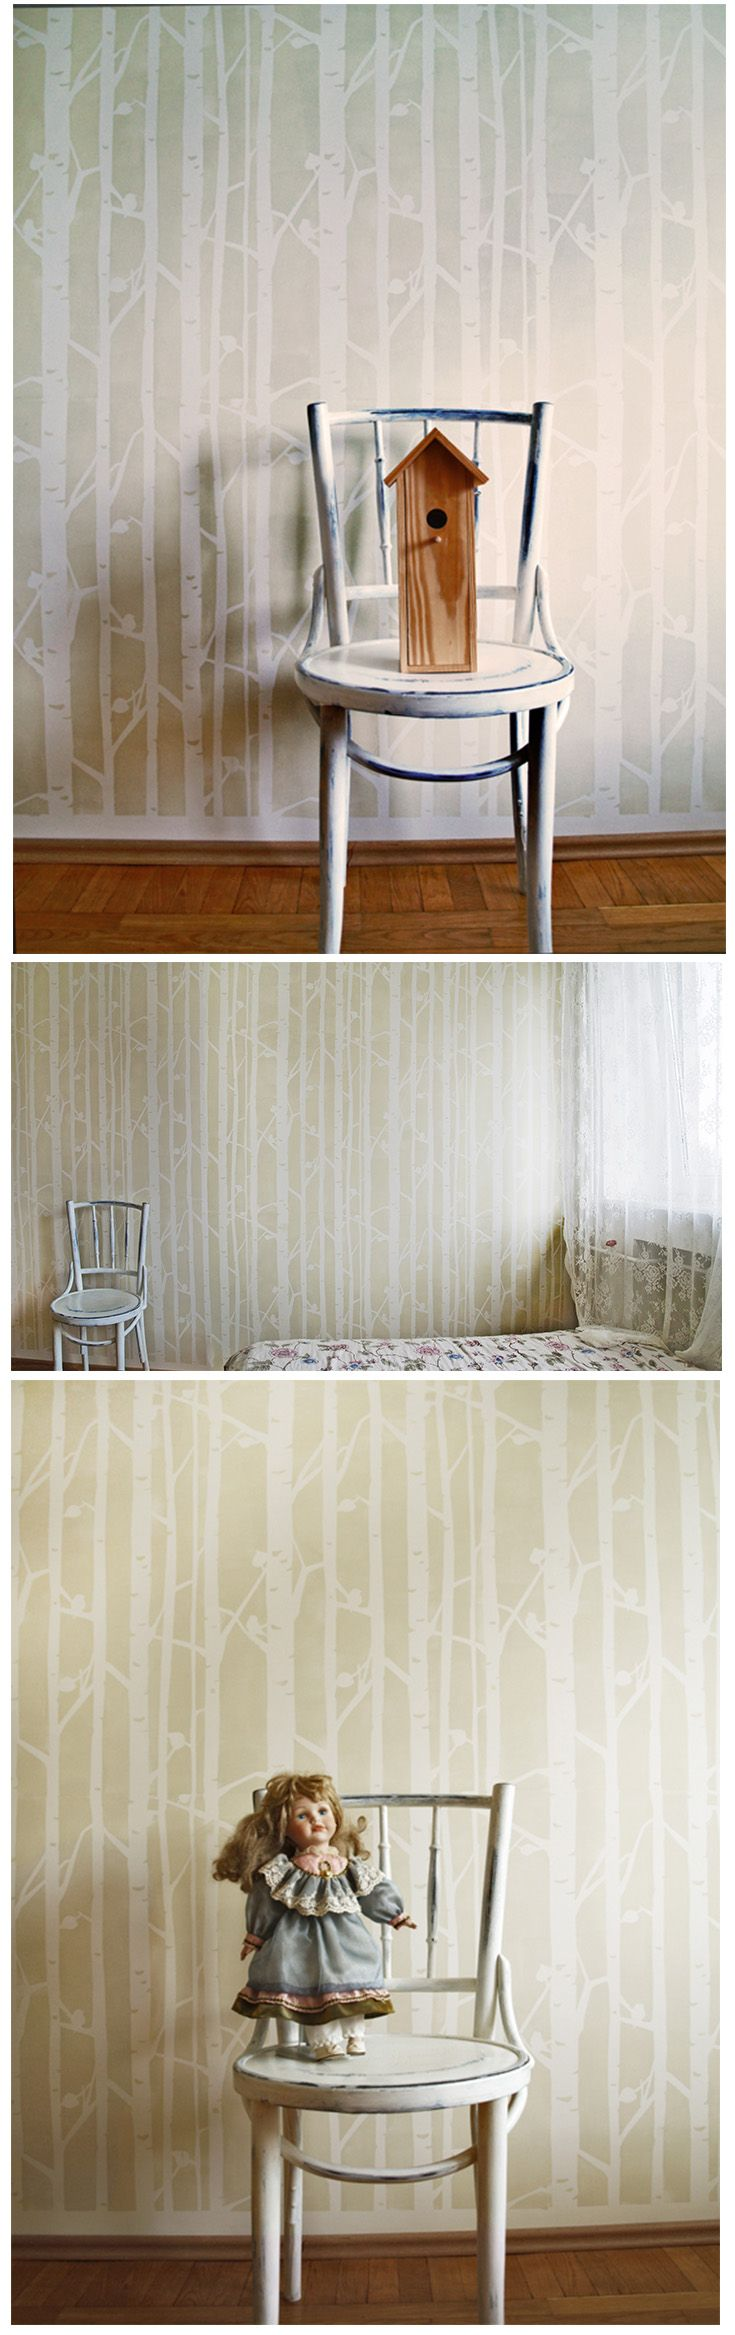 159 best forest walls images on pinterest photo wallpaper scandinavian wall stencils by stencilit amipublicfo Gallery